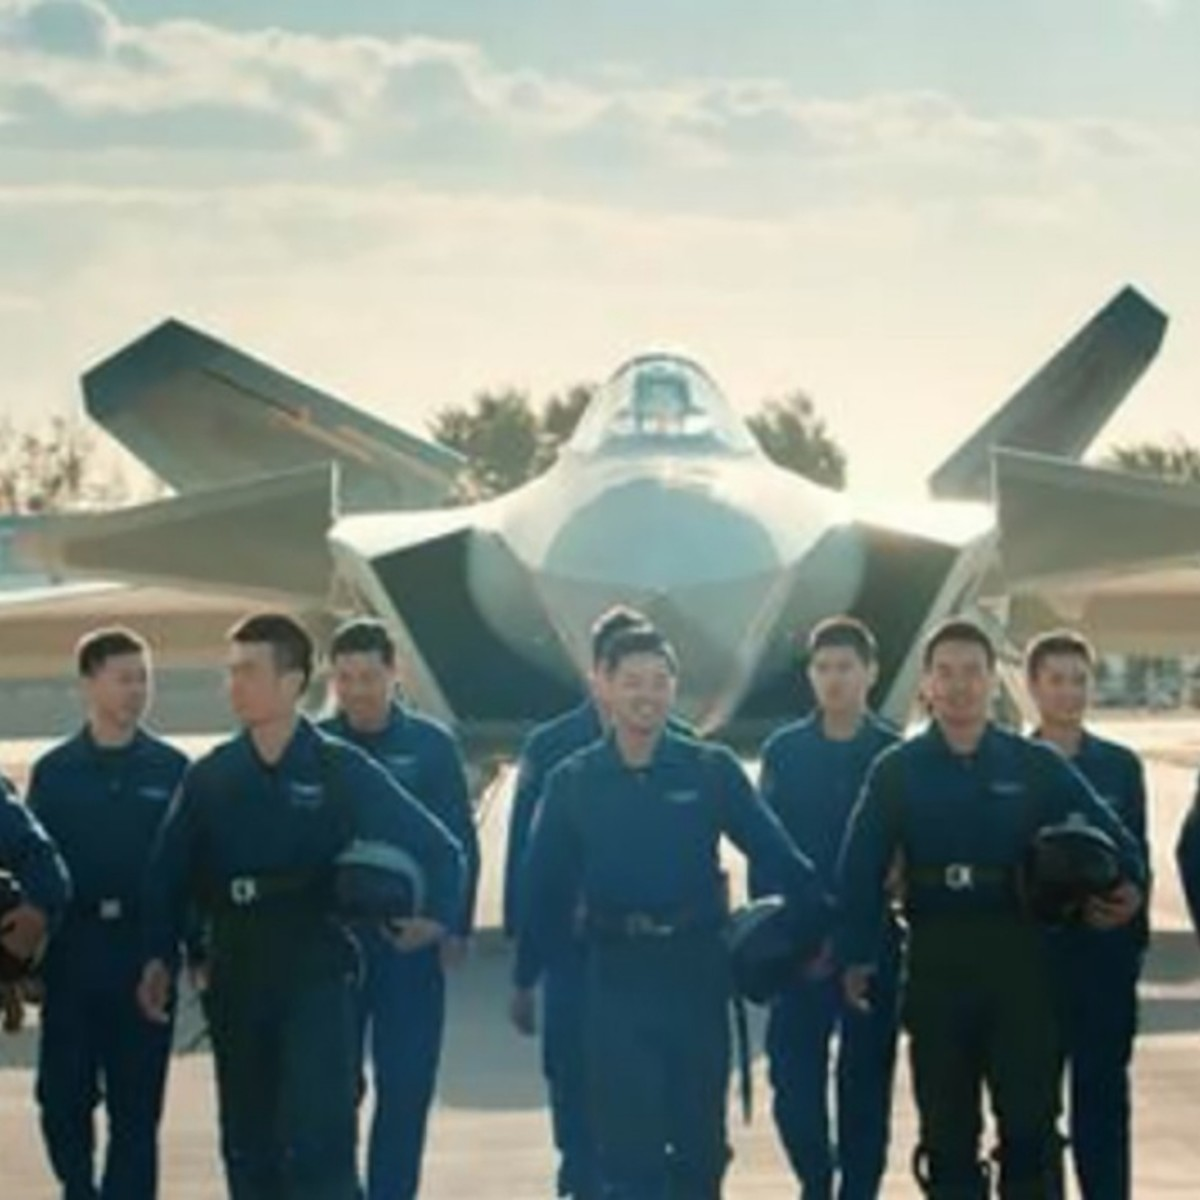 Pilots posing with the J-20 stealth fighter.